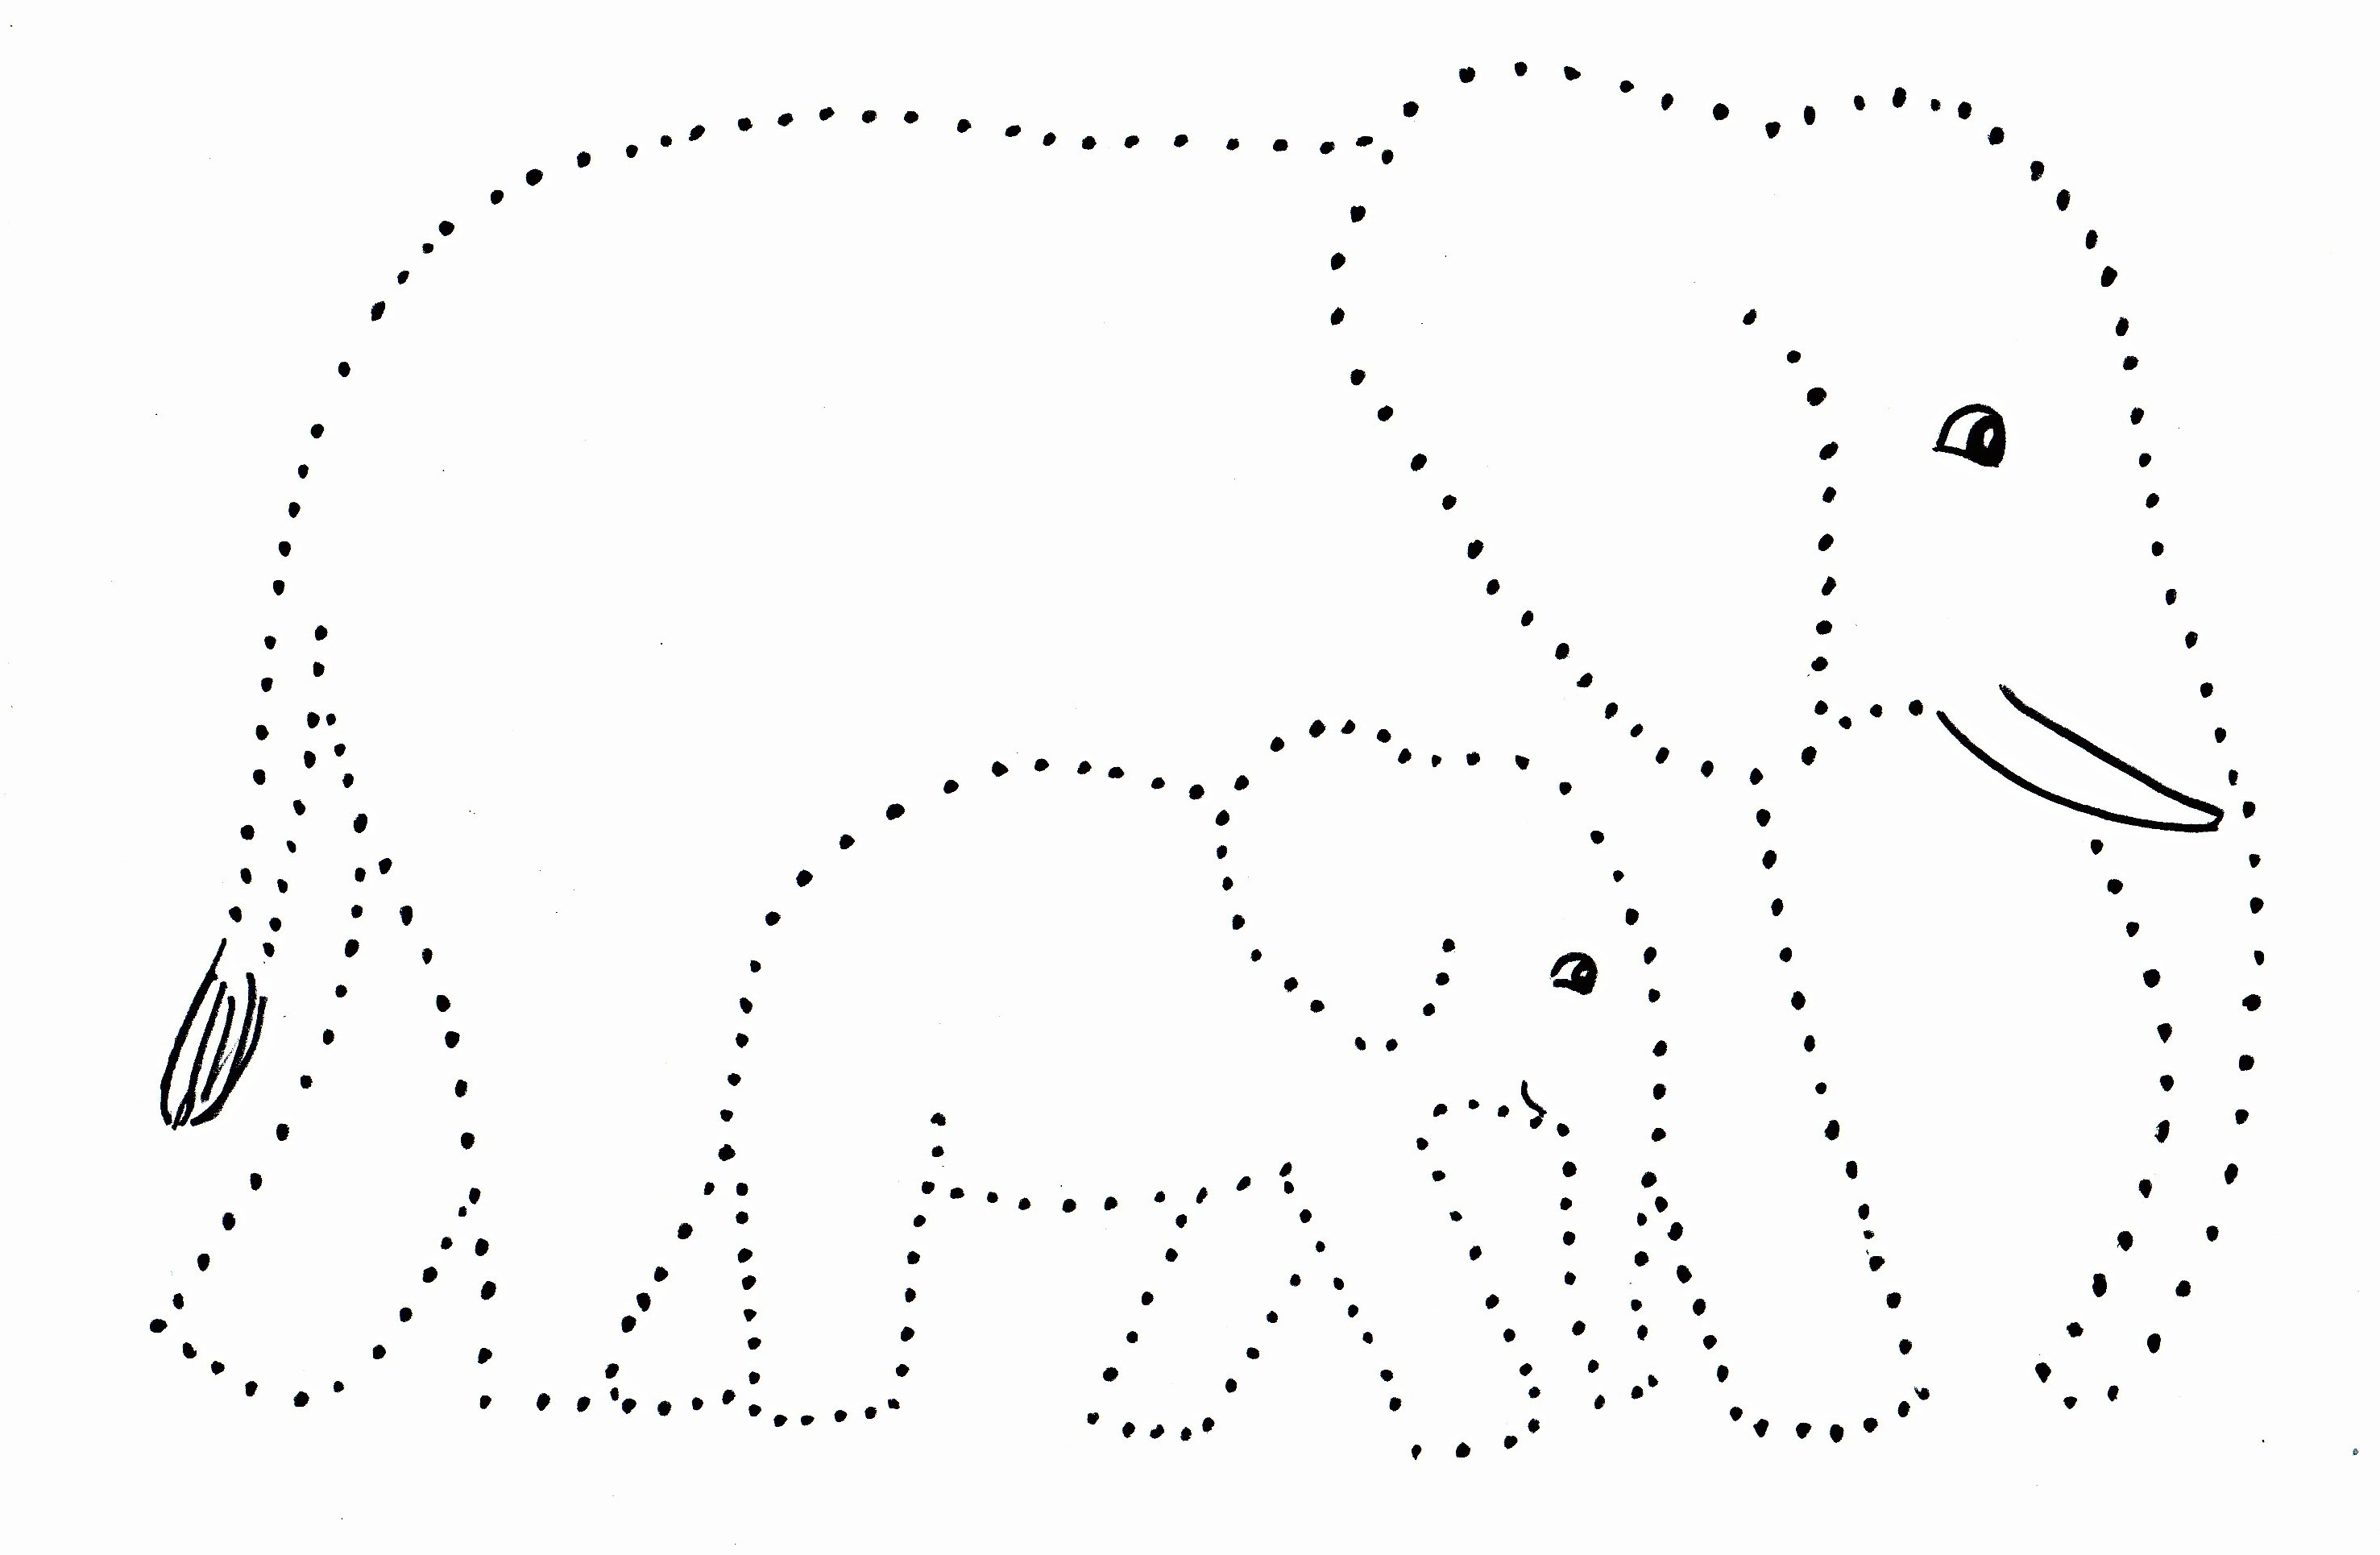 elephant and baby dot drawing samantha bell